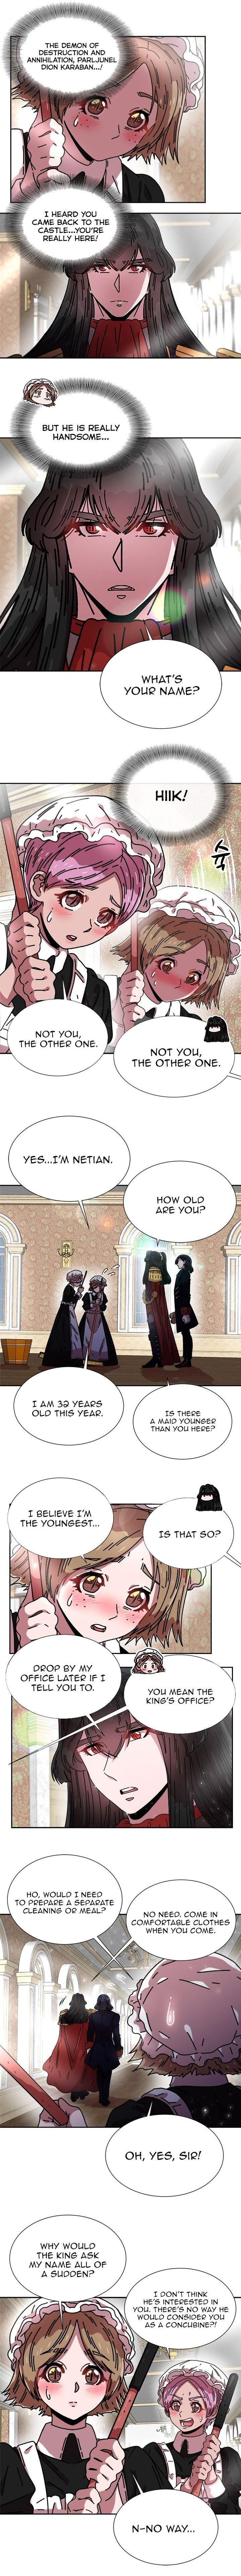 i_was_born_as_the_demon_lords_daughter_37_6